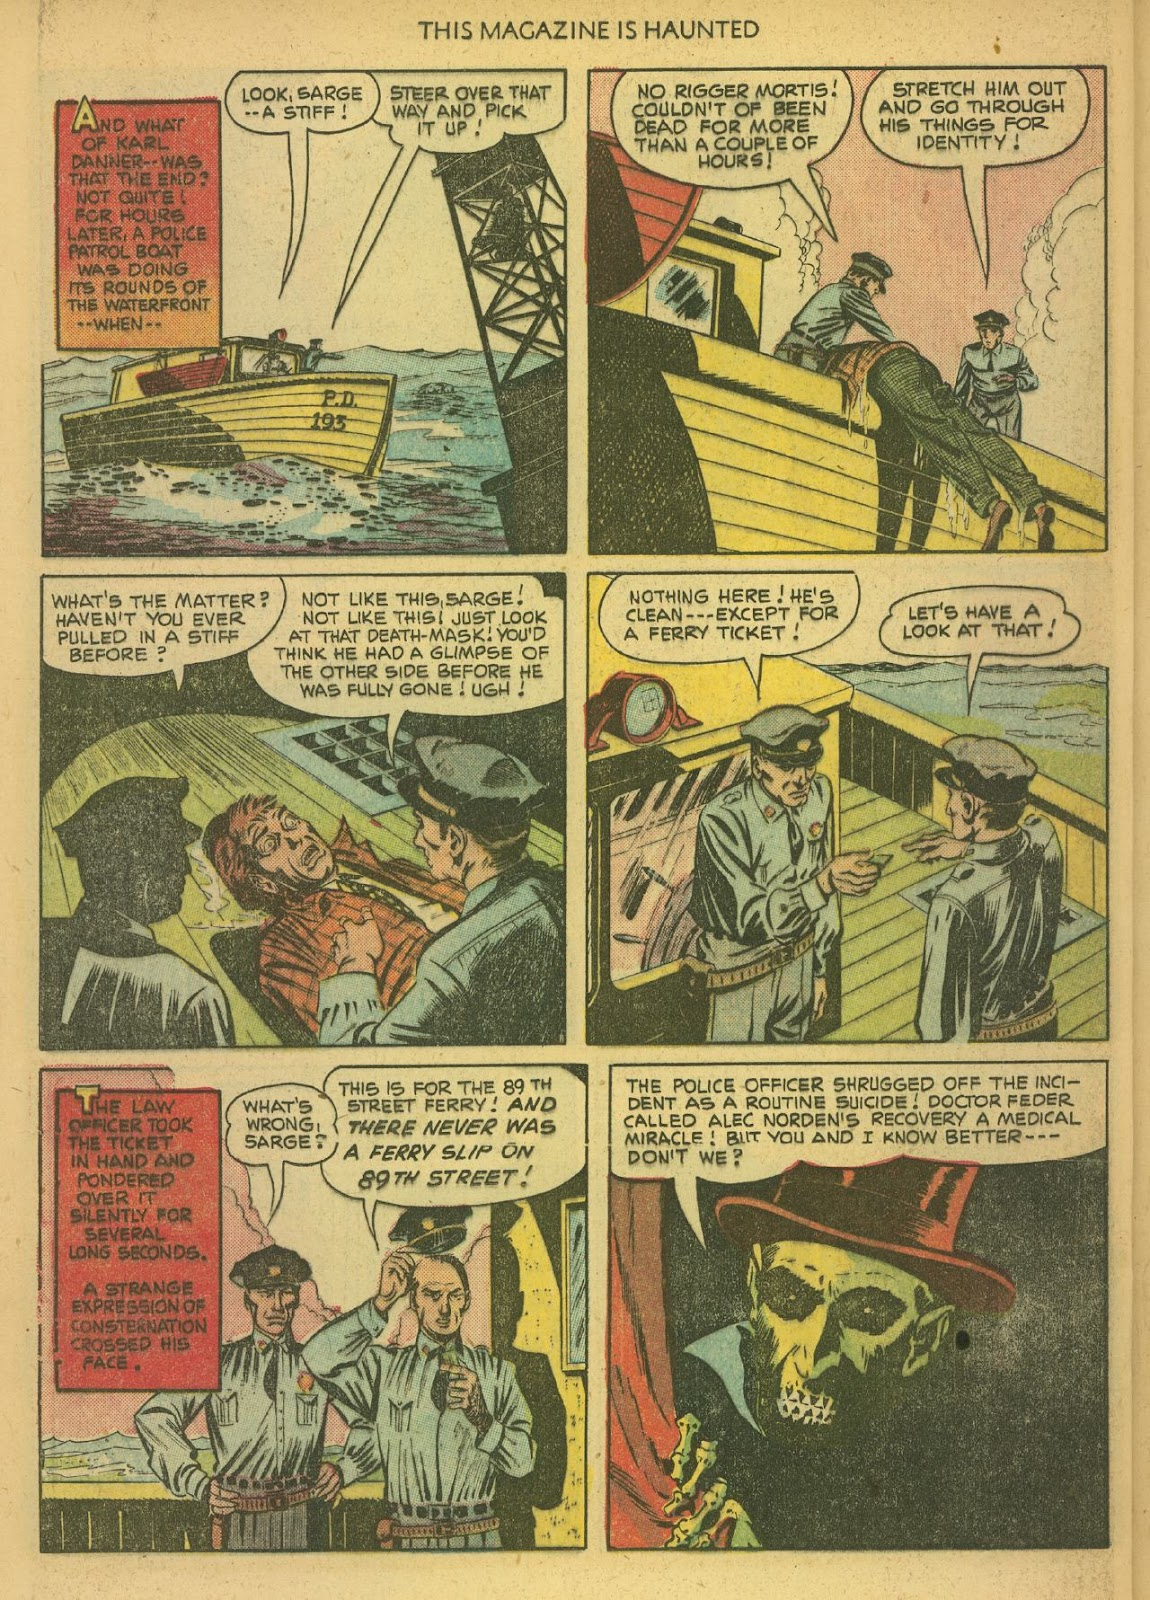 Read online This Magazine Is Haunted comic -  Issue #1 - 24